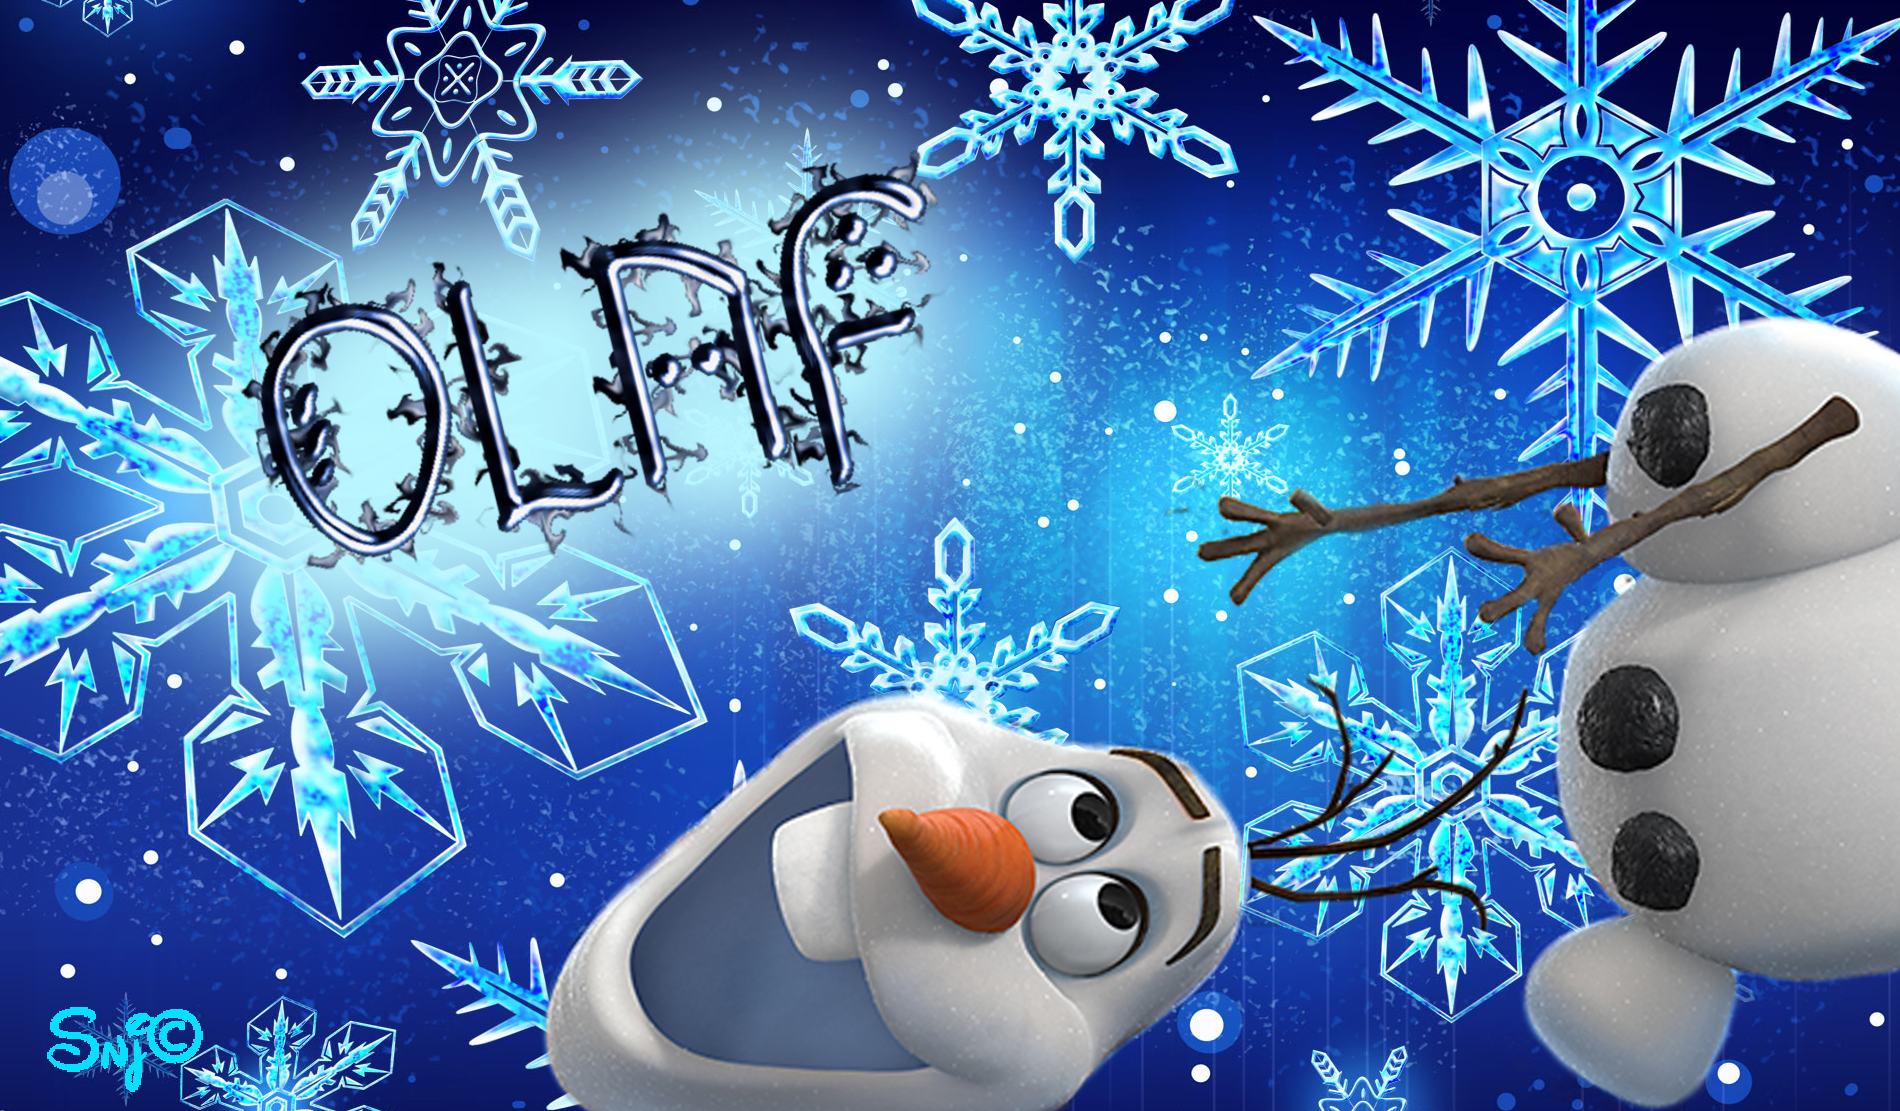 Olaf Wallpapers HD 1900x1111